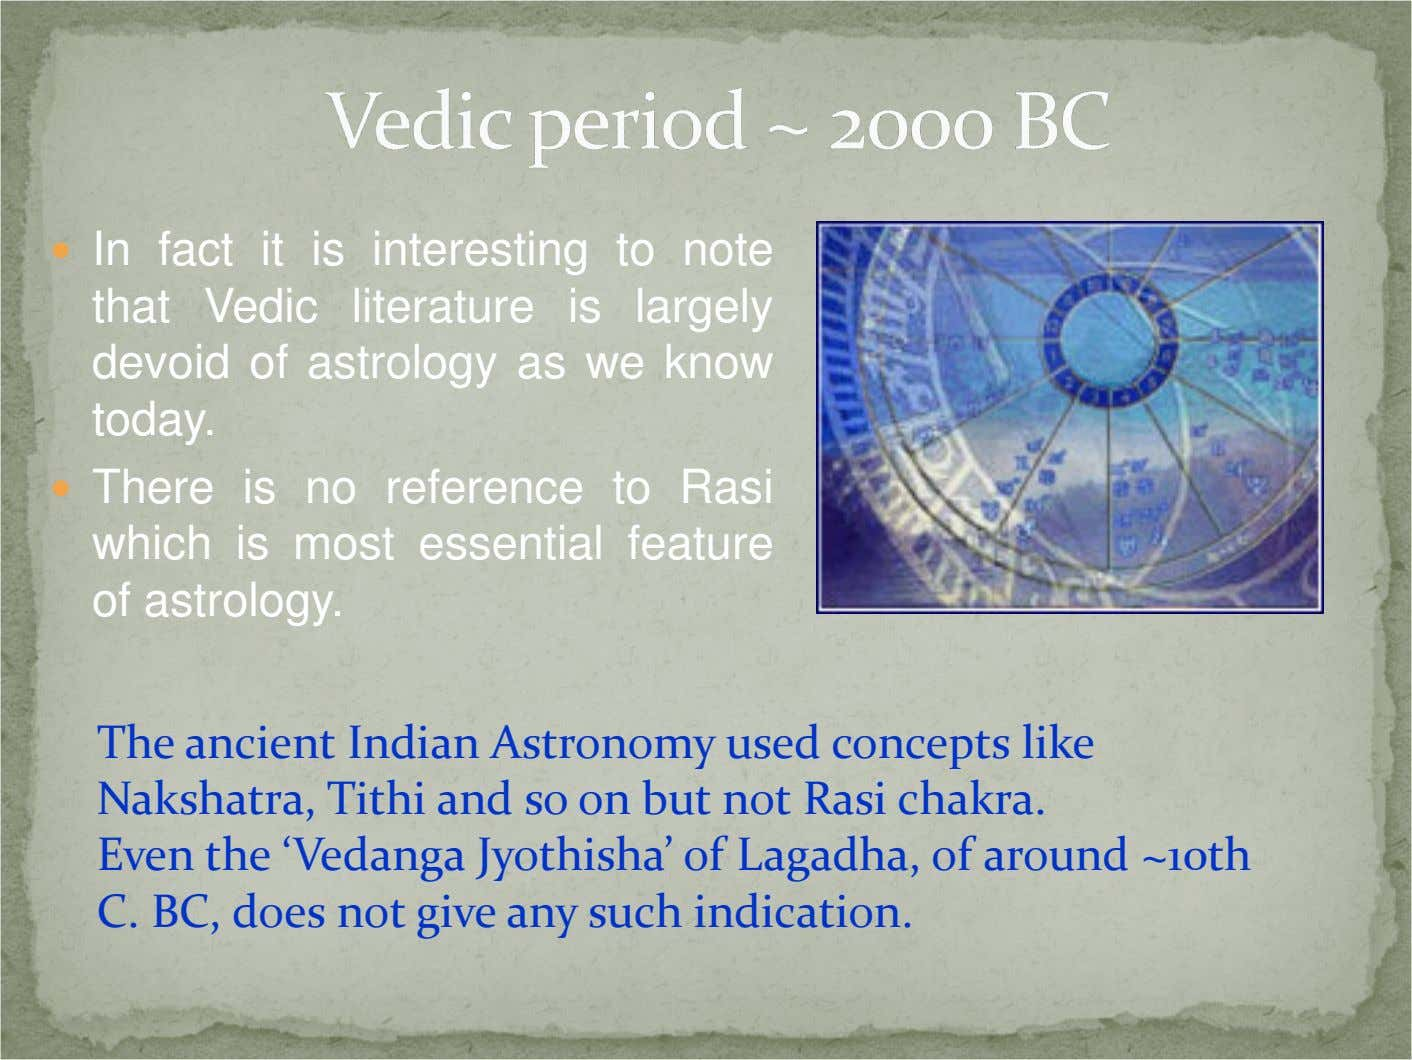 In fact it is interesting to note that Vedic literature is largely devoid of astrology